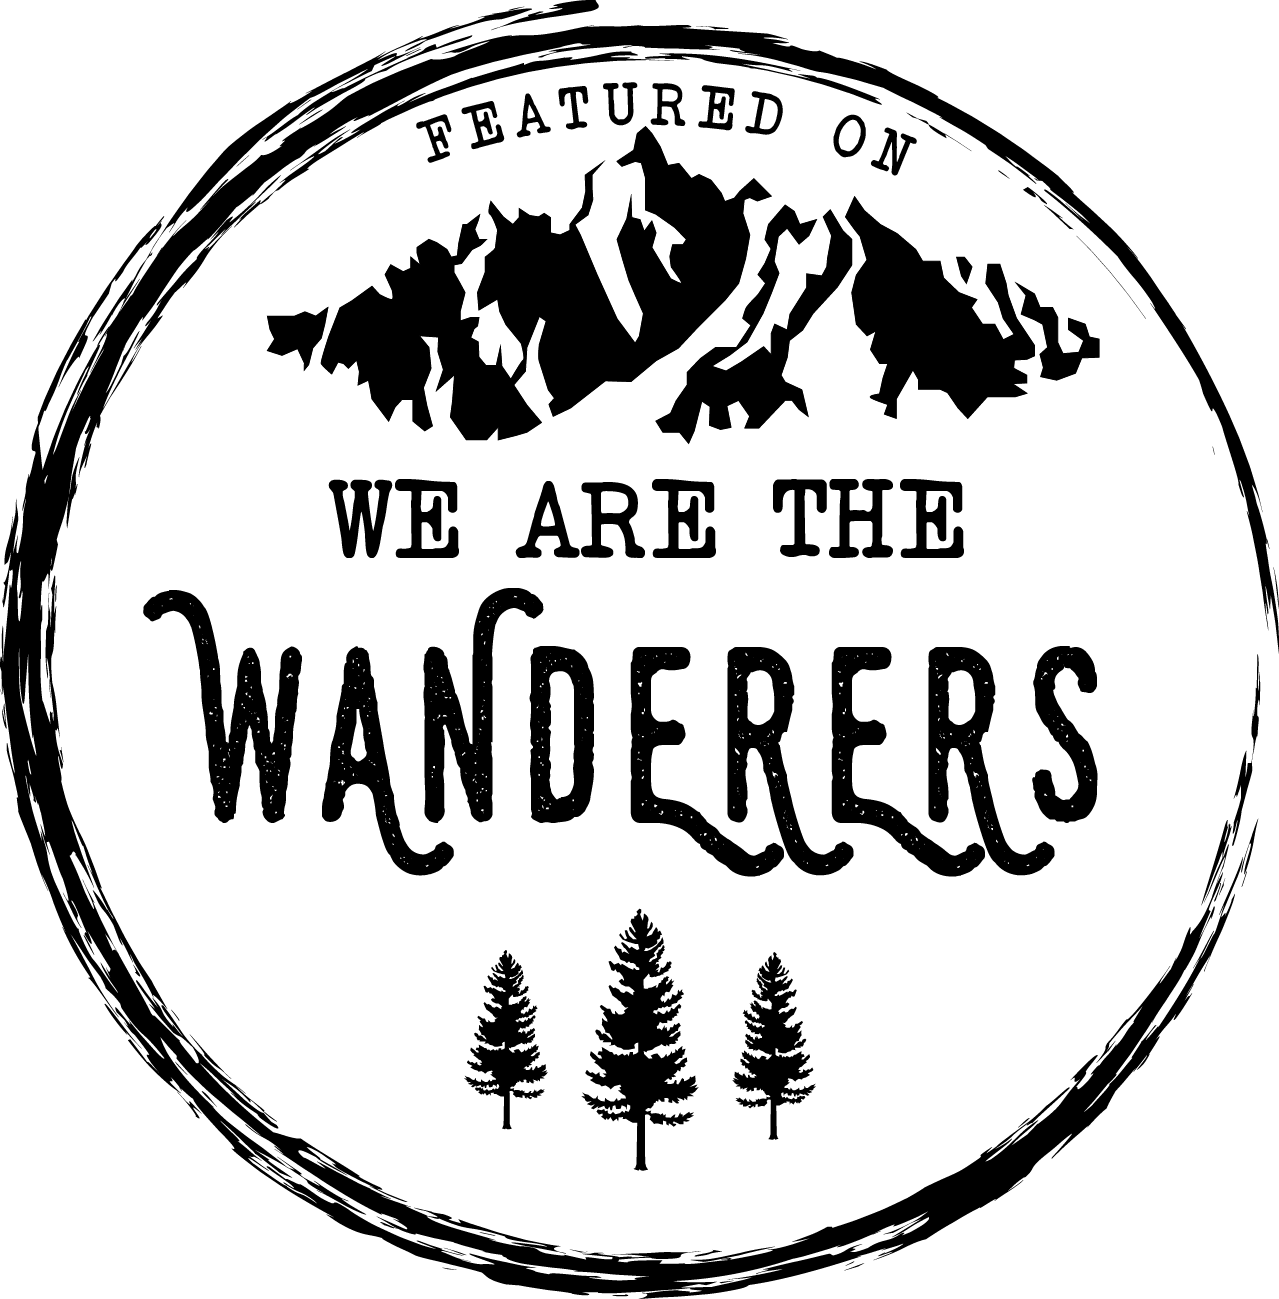 We Are The Wanderers_LOGO_FEATURED ON.png